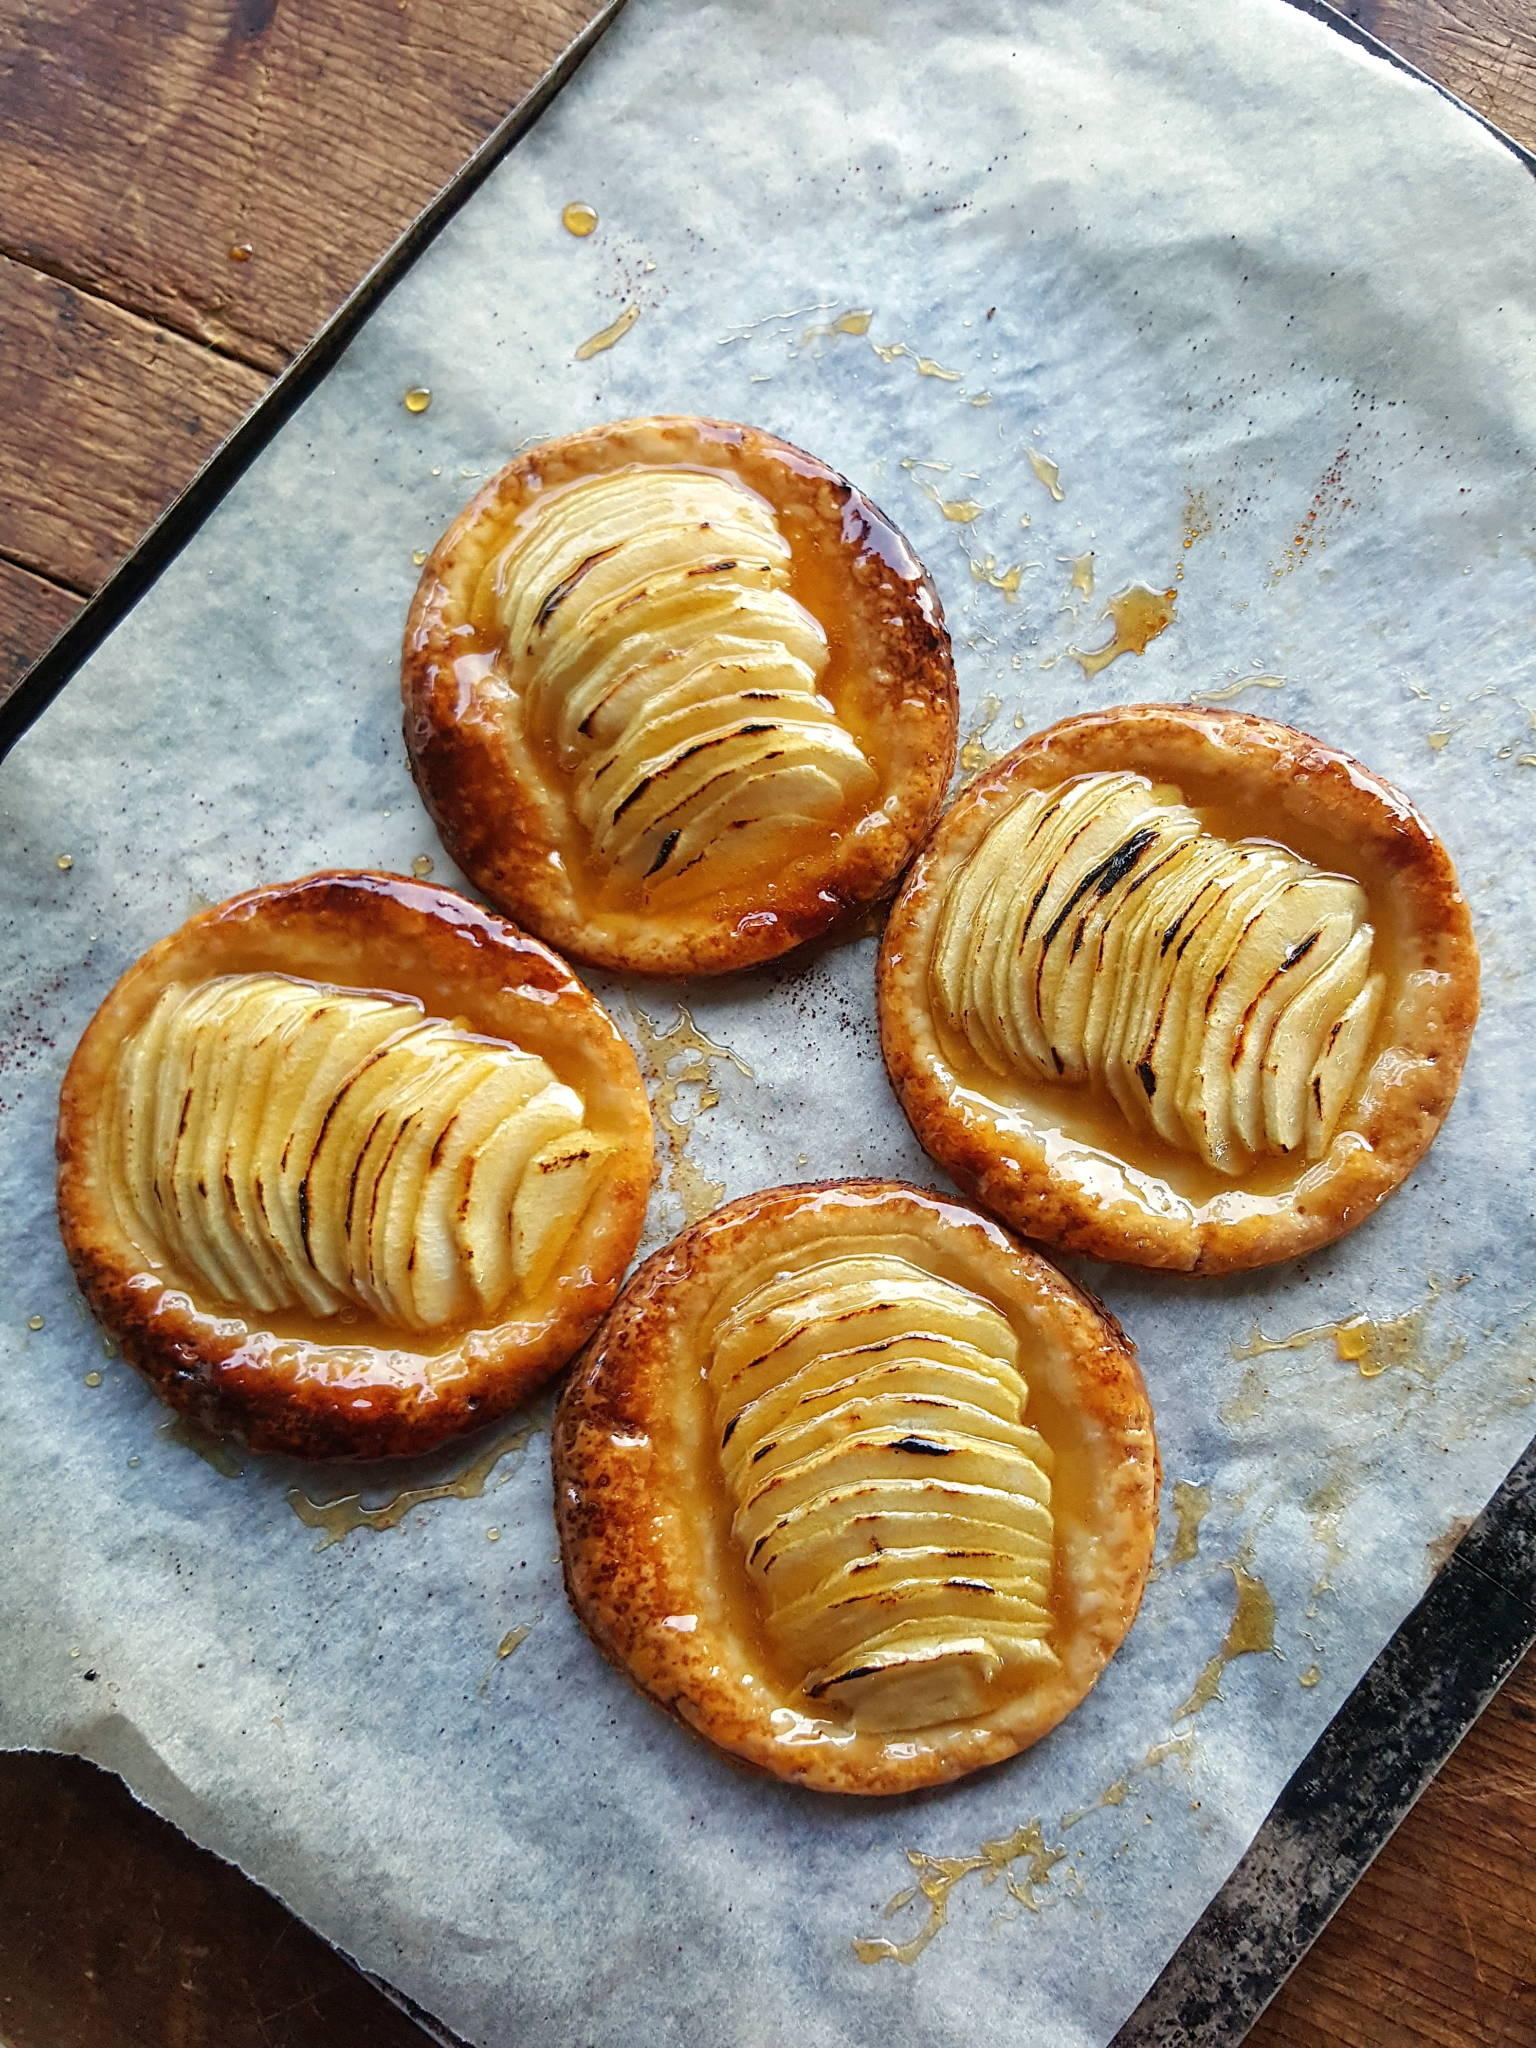 Apple galettes